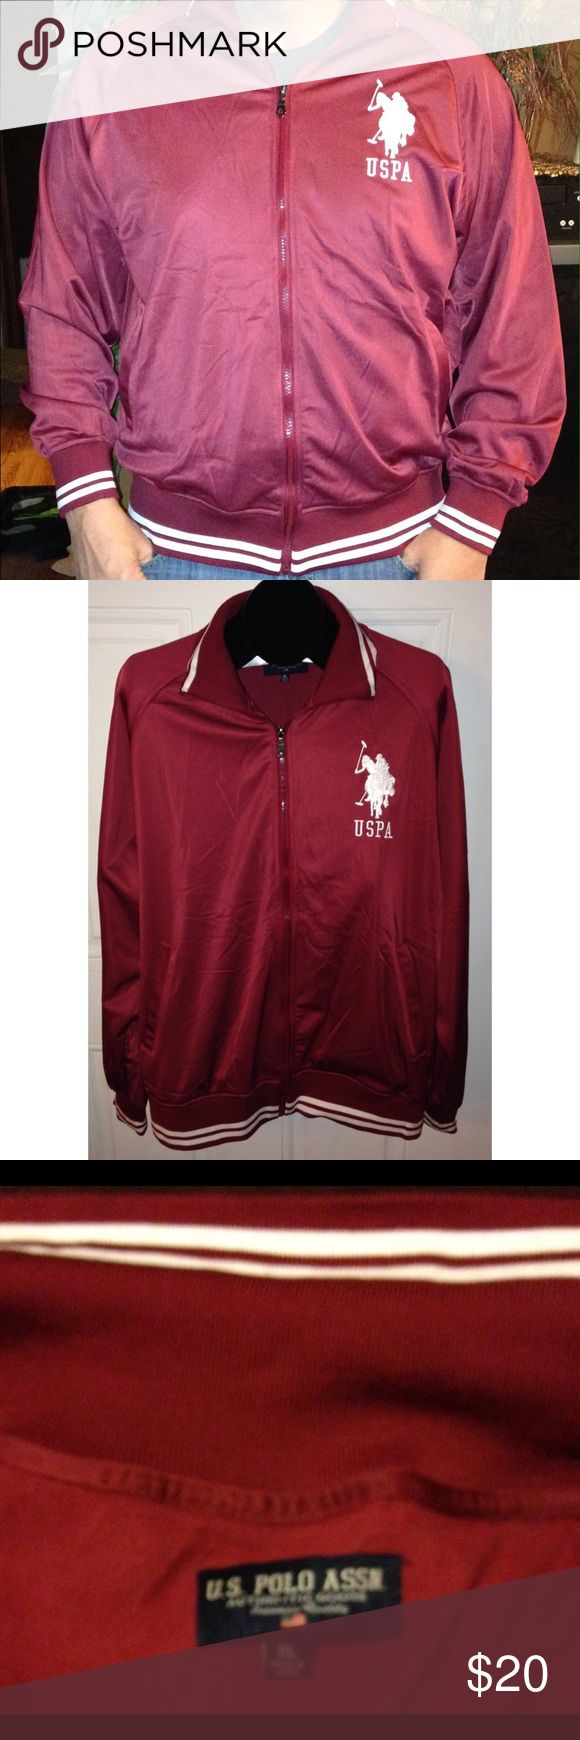 """Men's United States Polo Association Jacket This is a men's burgundy United States Polo Association Jacket. It is an XL with measurements: pit-pit:25"""" and top-bottom: 31 1/2"""". It is 100% polyester. It is in great condition. Jackets & Coats Bomber & Varsity"""